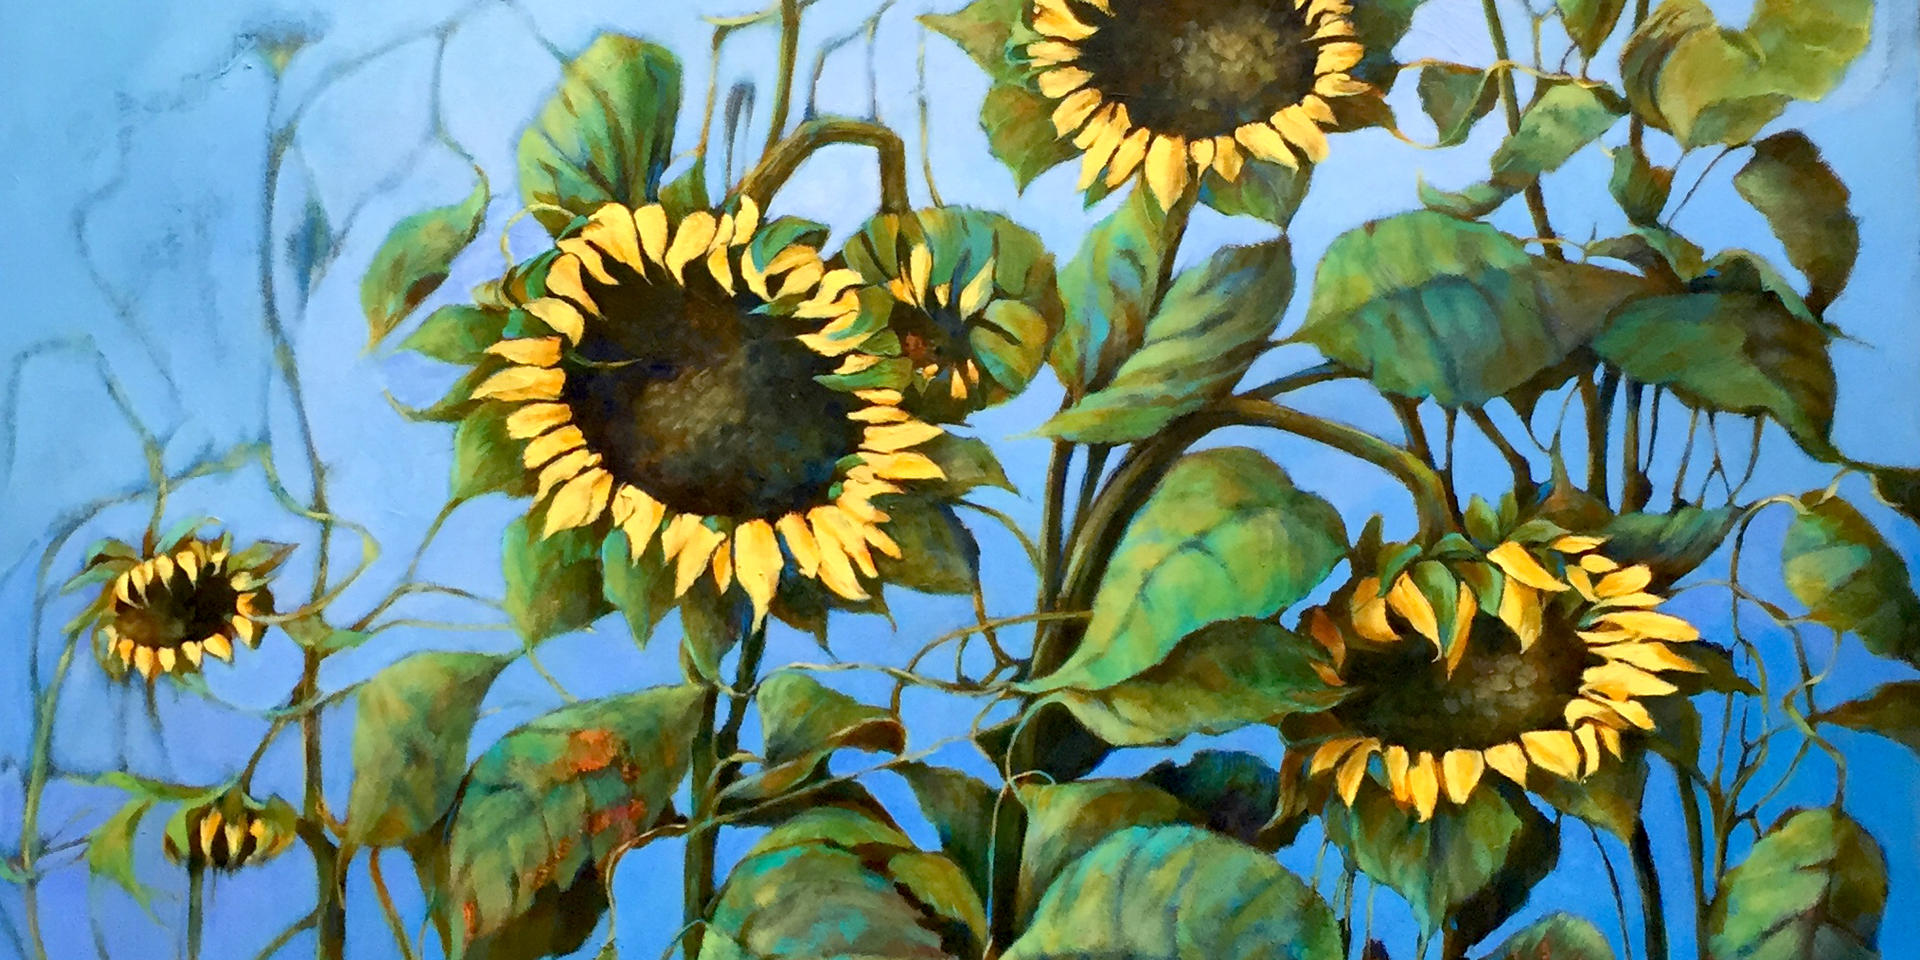 The Consolation of Sunflowers